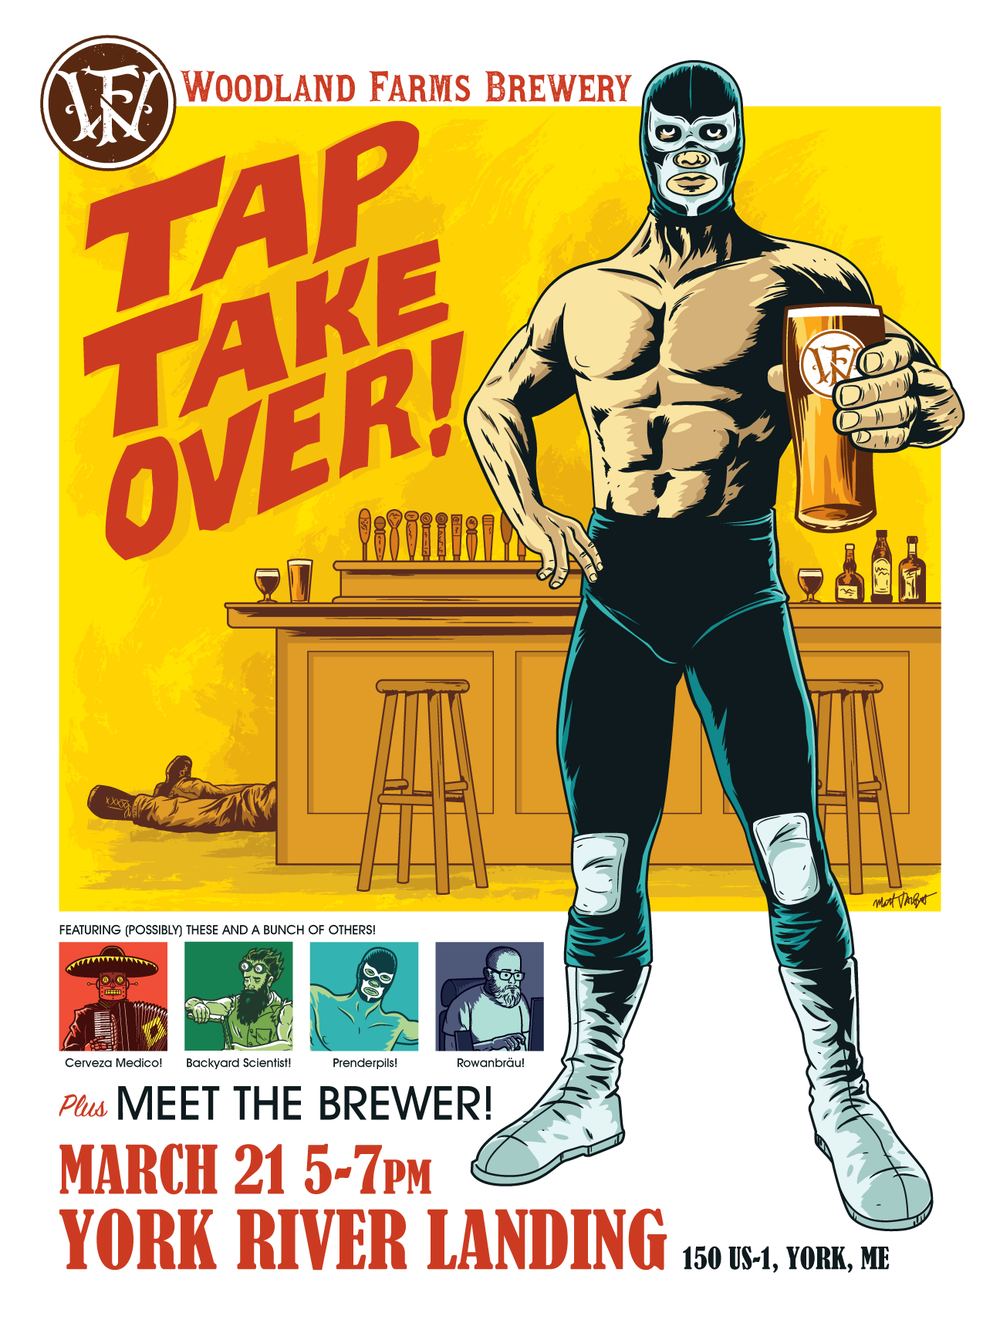 Woodland Farms Brewery Tap Takeover poster by Matt Talbot